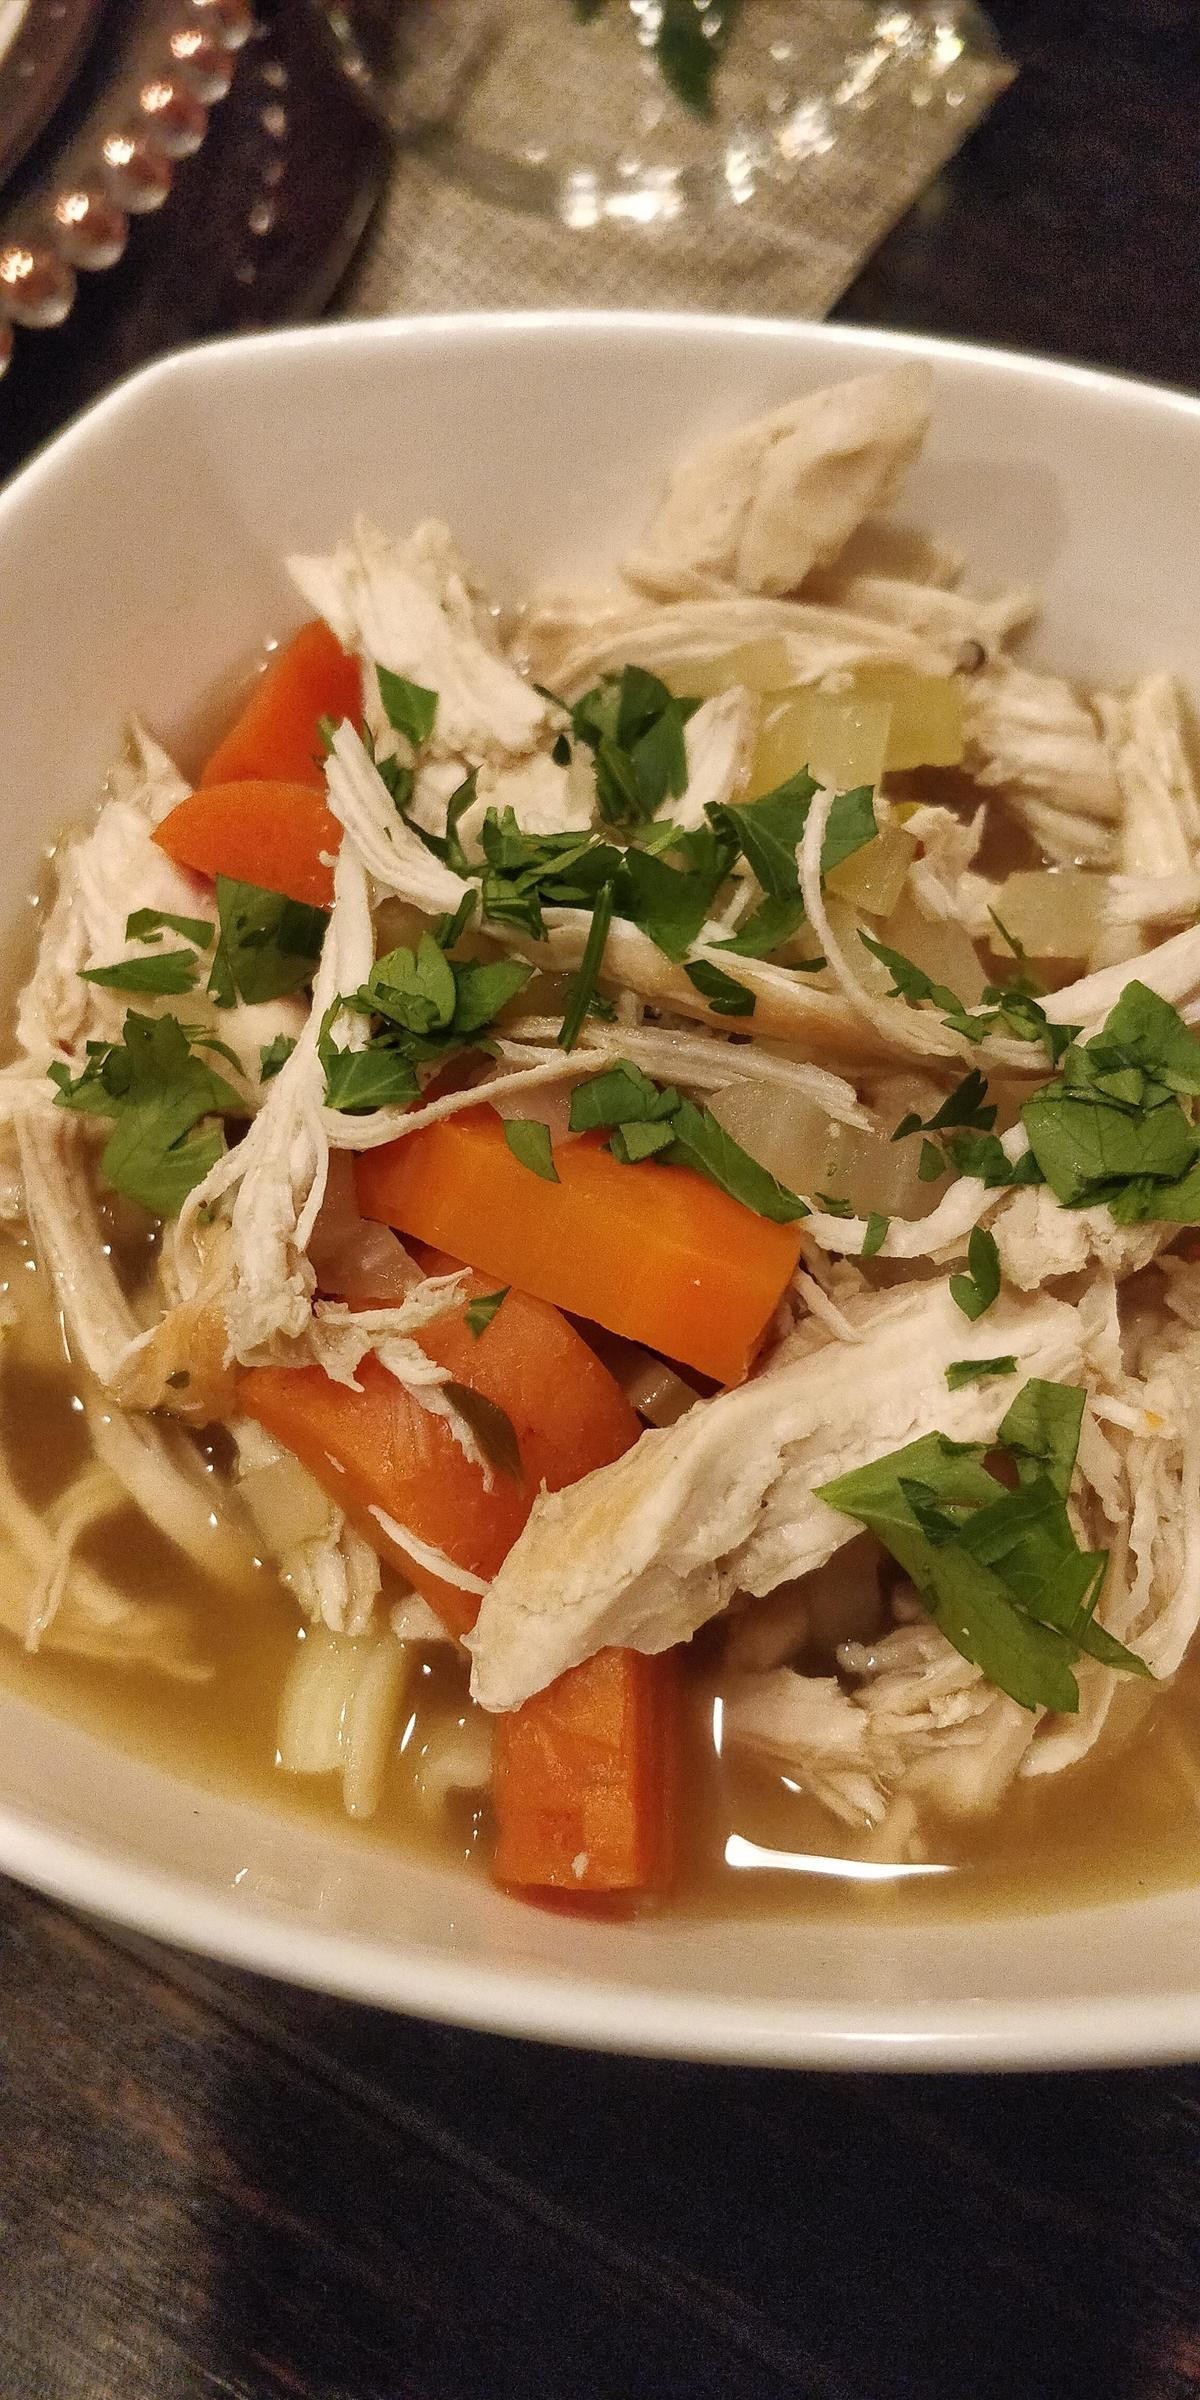 Homemade Chicken noodle soup. join list: QuixoticMeals (123 subs)Mention History.. Seems good but those are some really large pieces imo. And I feel like the chicken should be submerged otherwise that'll be dryComment edited at .